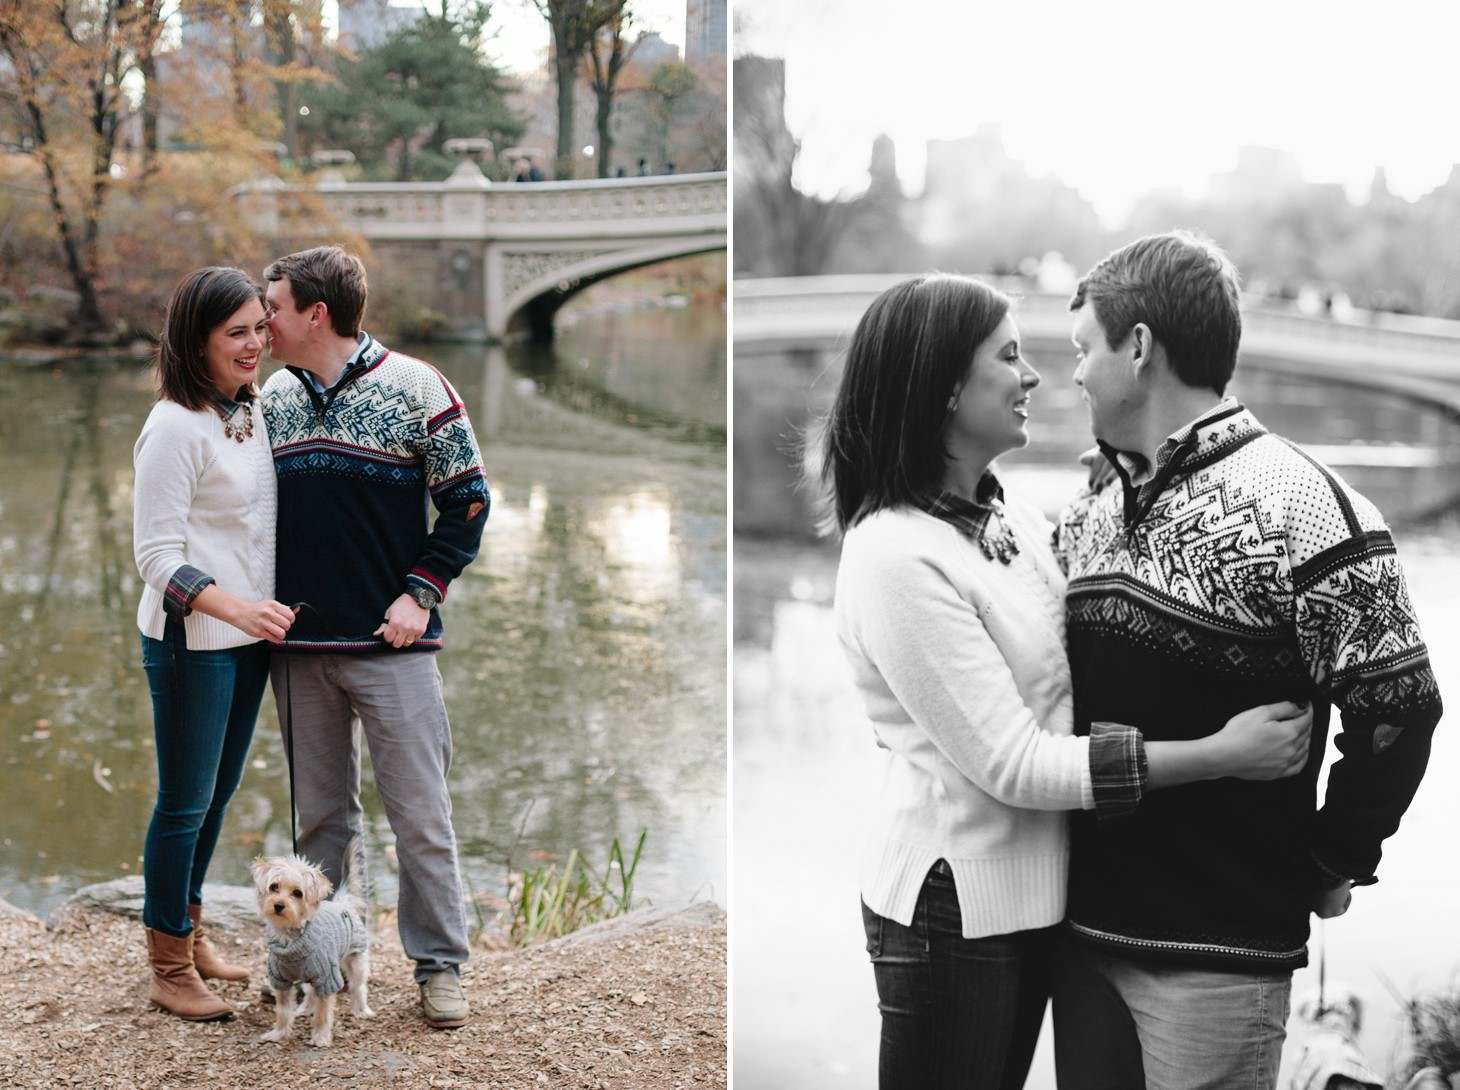 013-nyc-wedding-photographer-puppy-holiday-mini-session-fall-central-park.jpg